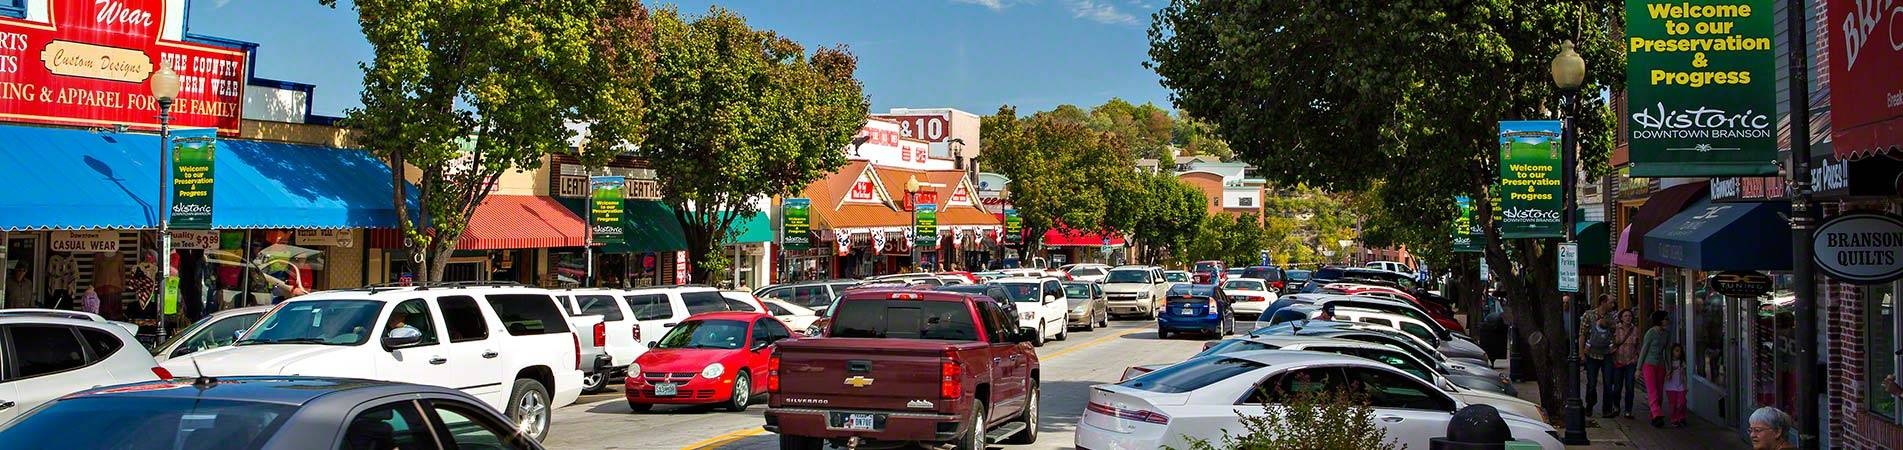 The downtown area just a few blocks from our vacation rentals in Branson.